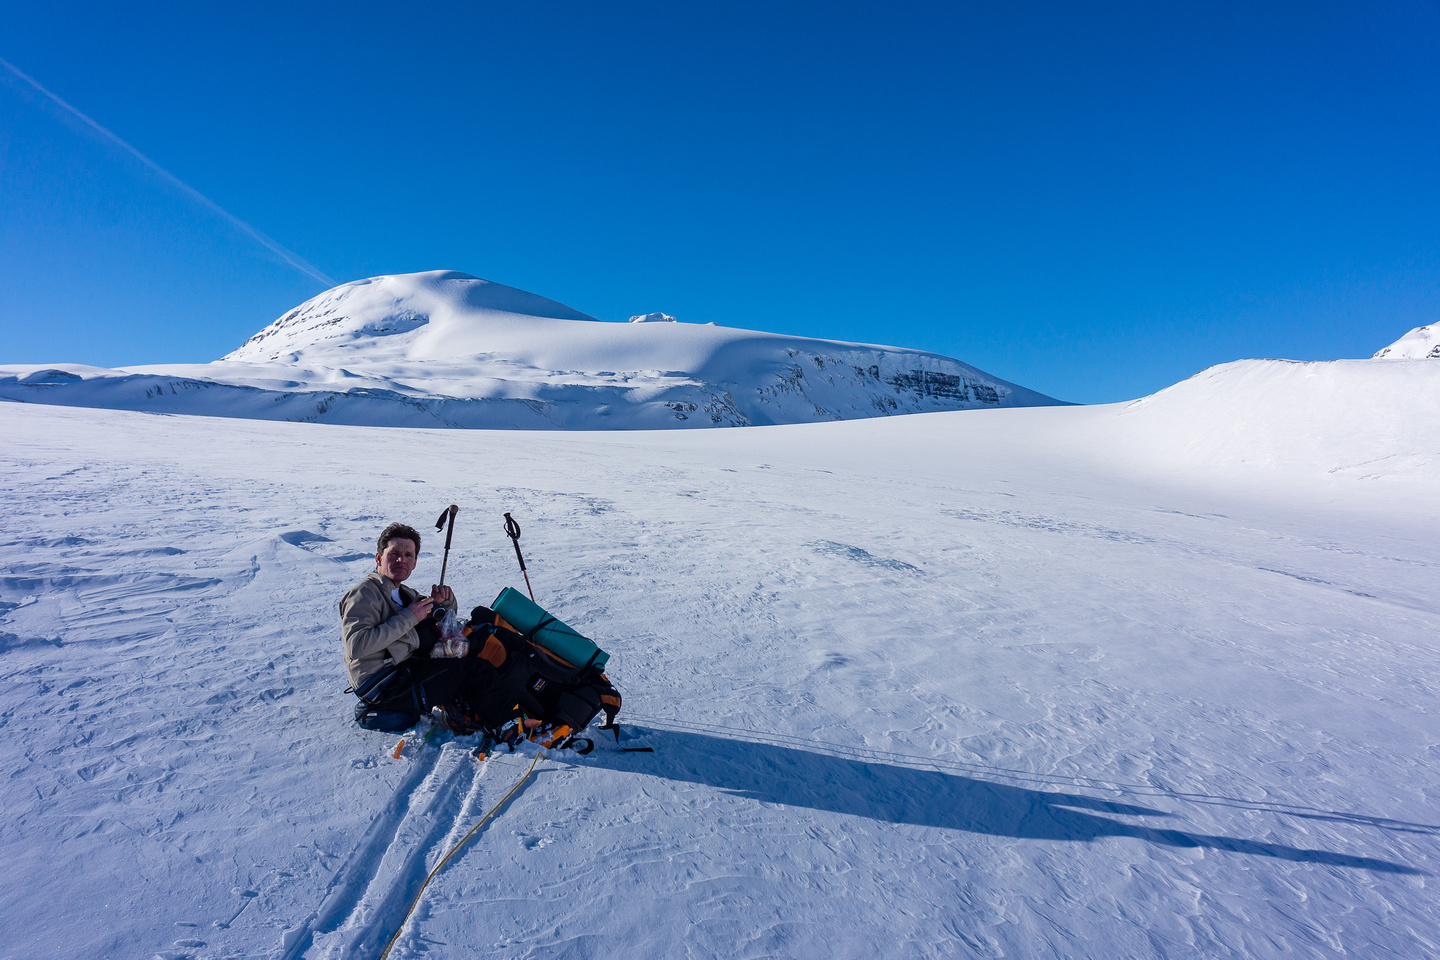 Skiing up the Saskatchewan Glacier.